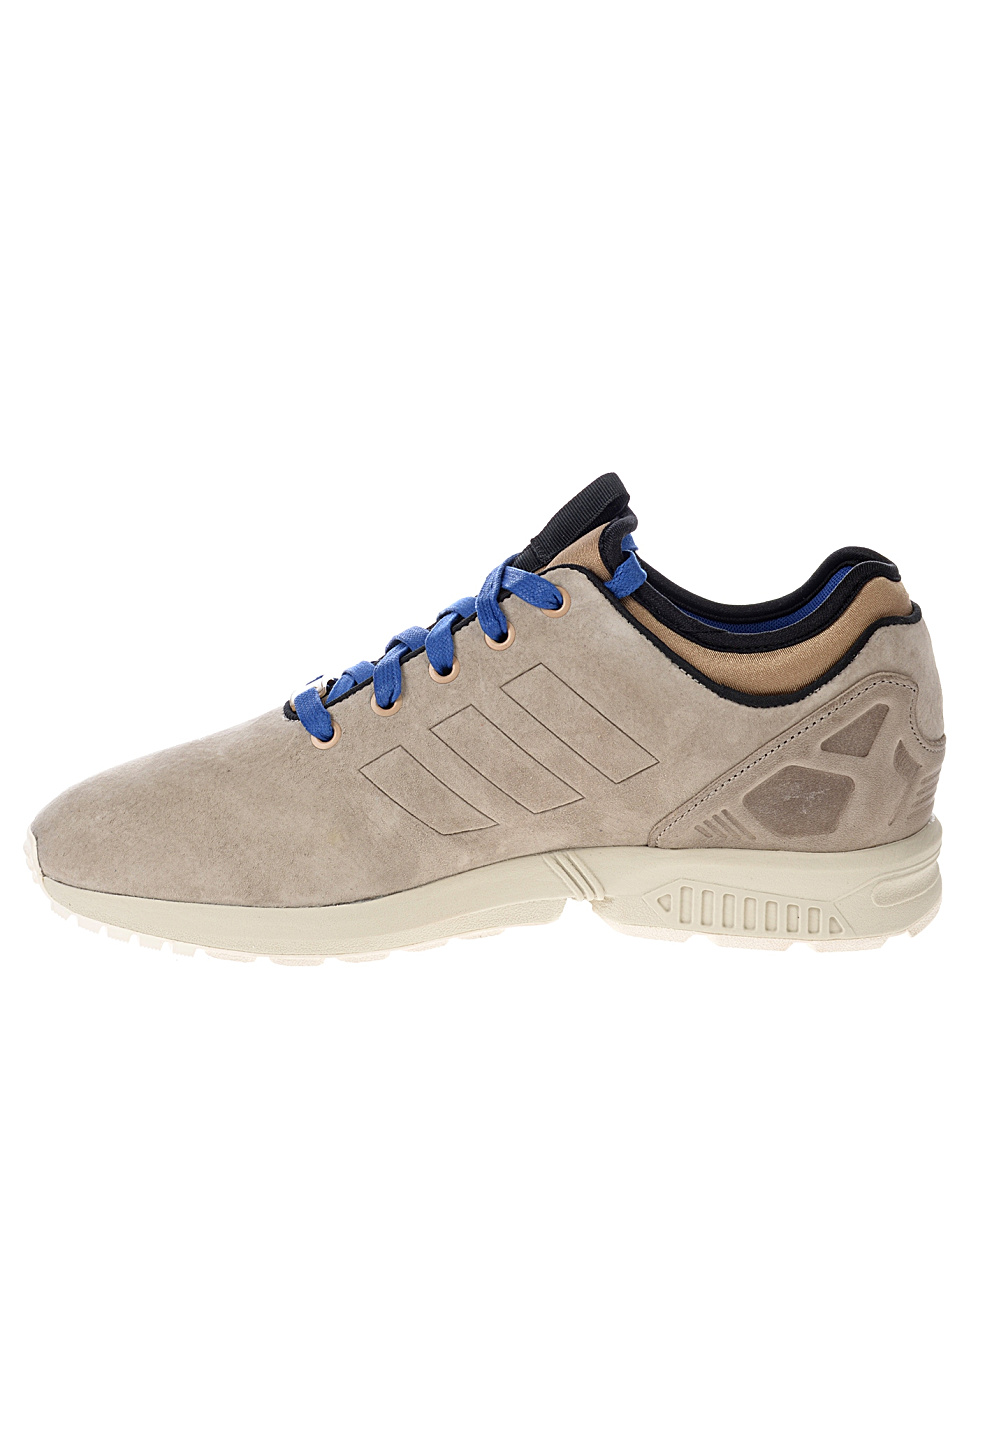 678abd55b942 Next. -40%. This product is currently out of stock. ADIDAS. ZX Flux NPS -  Sneakers for Men